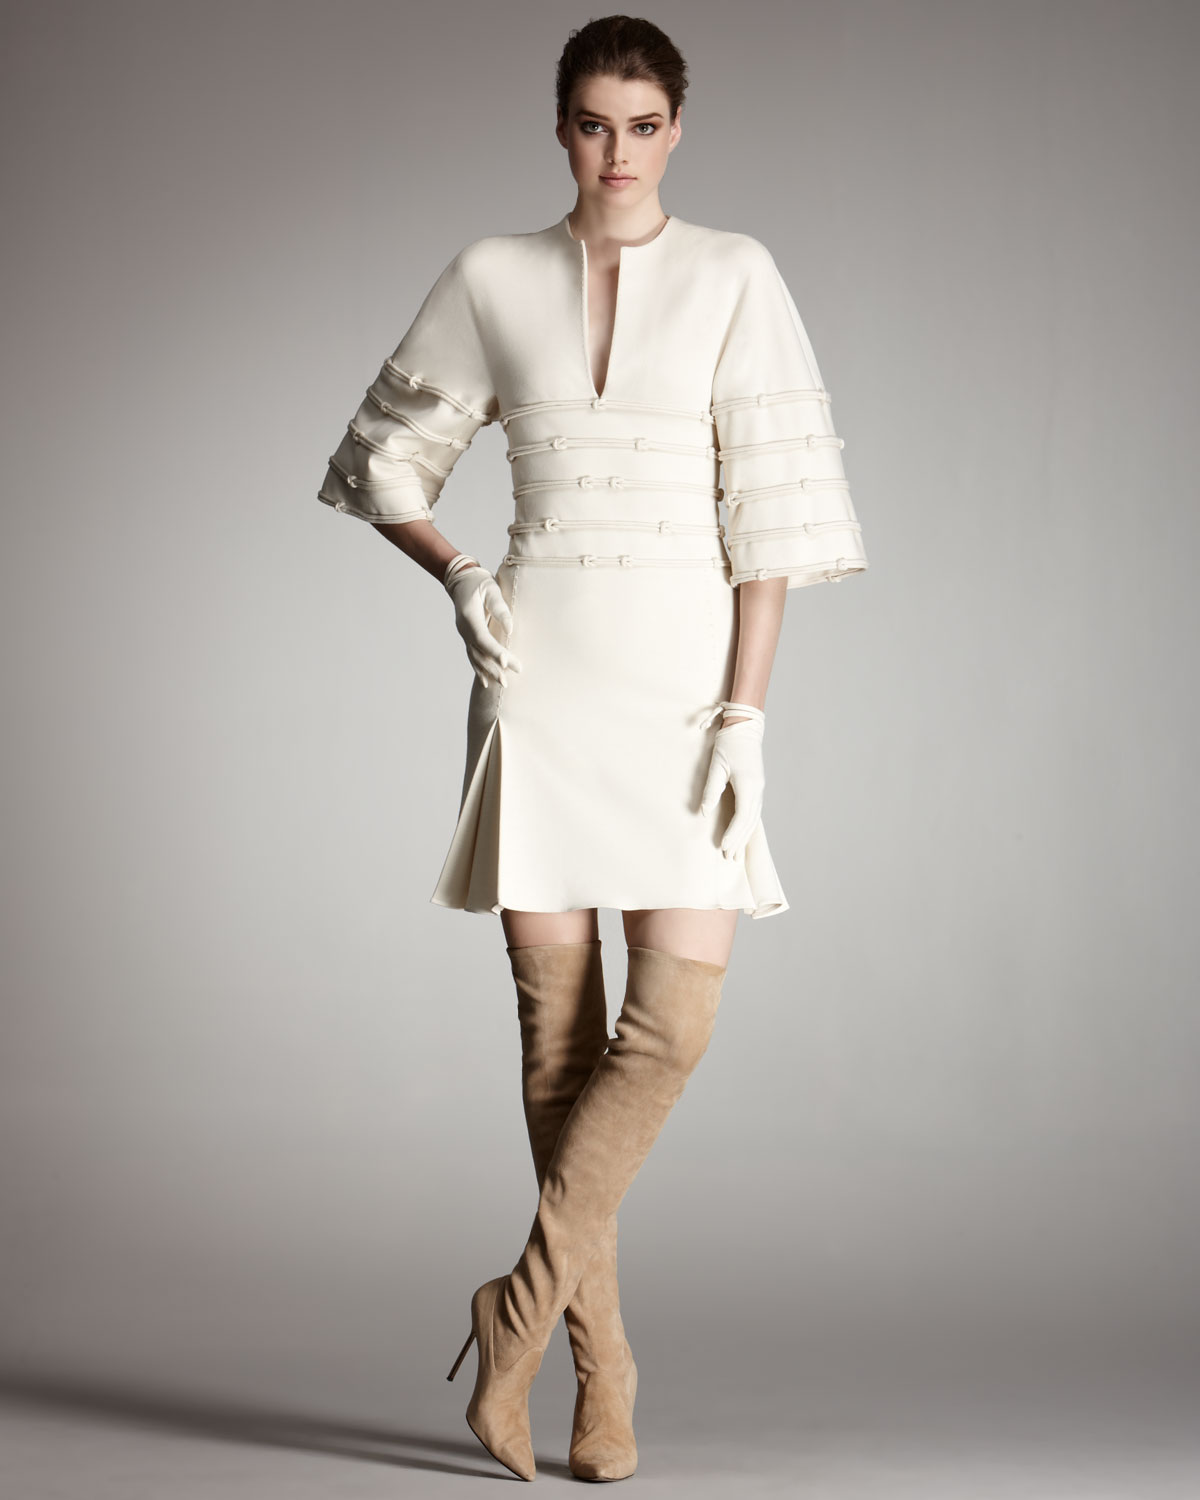 Images of White Dress With Kimono - Get Your Fashion Style